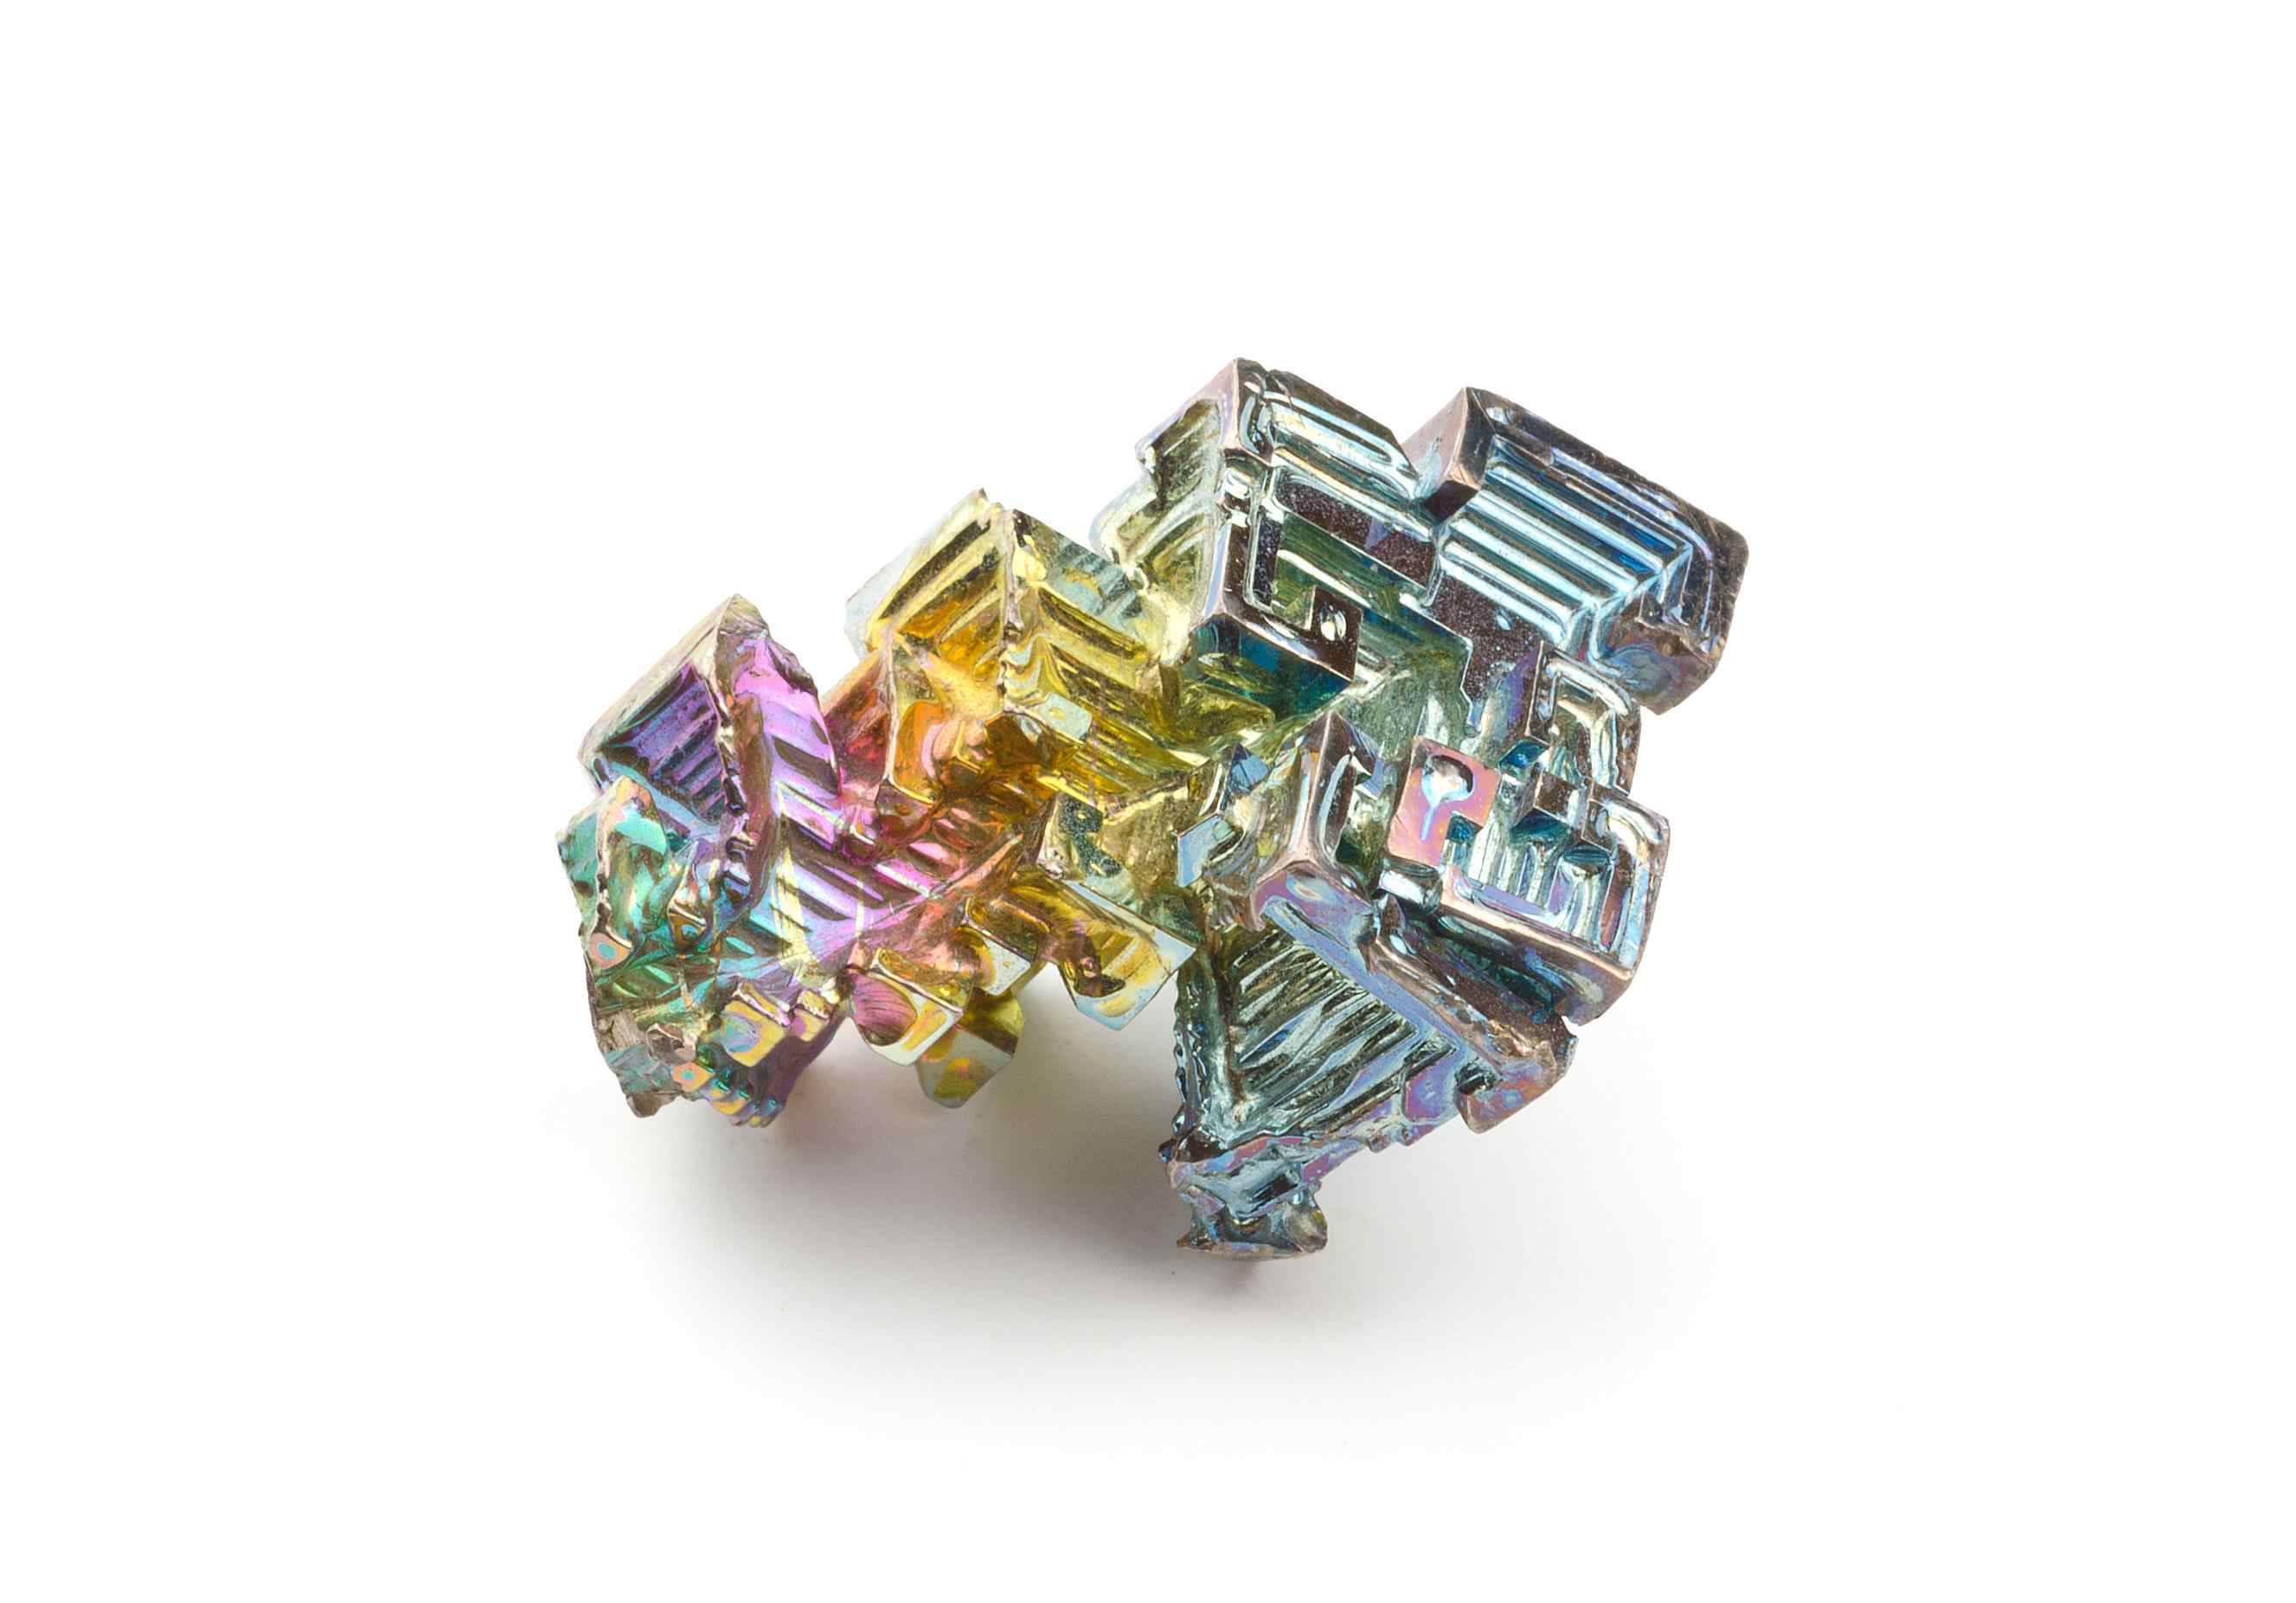 Chemical Element Pictures - Photo Gallery